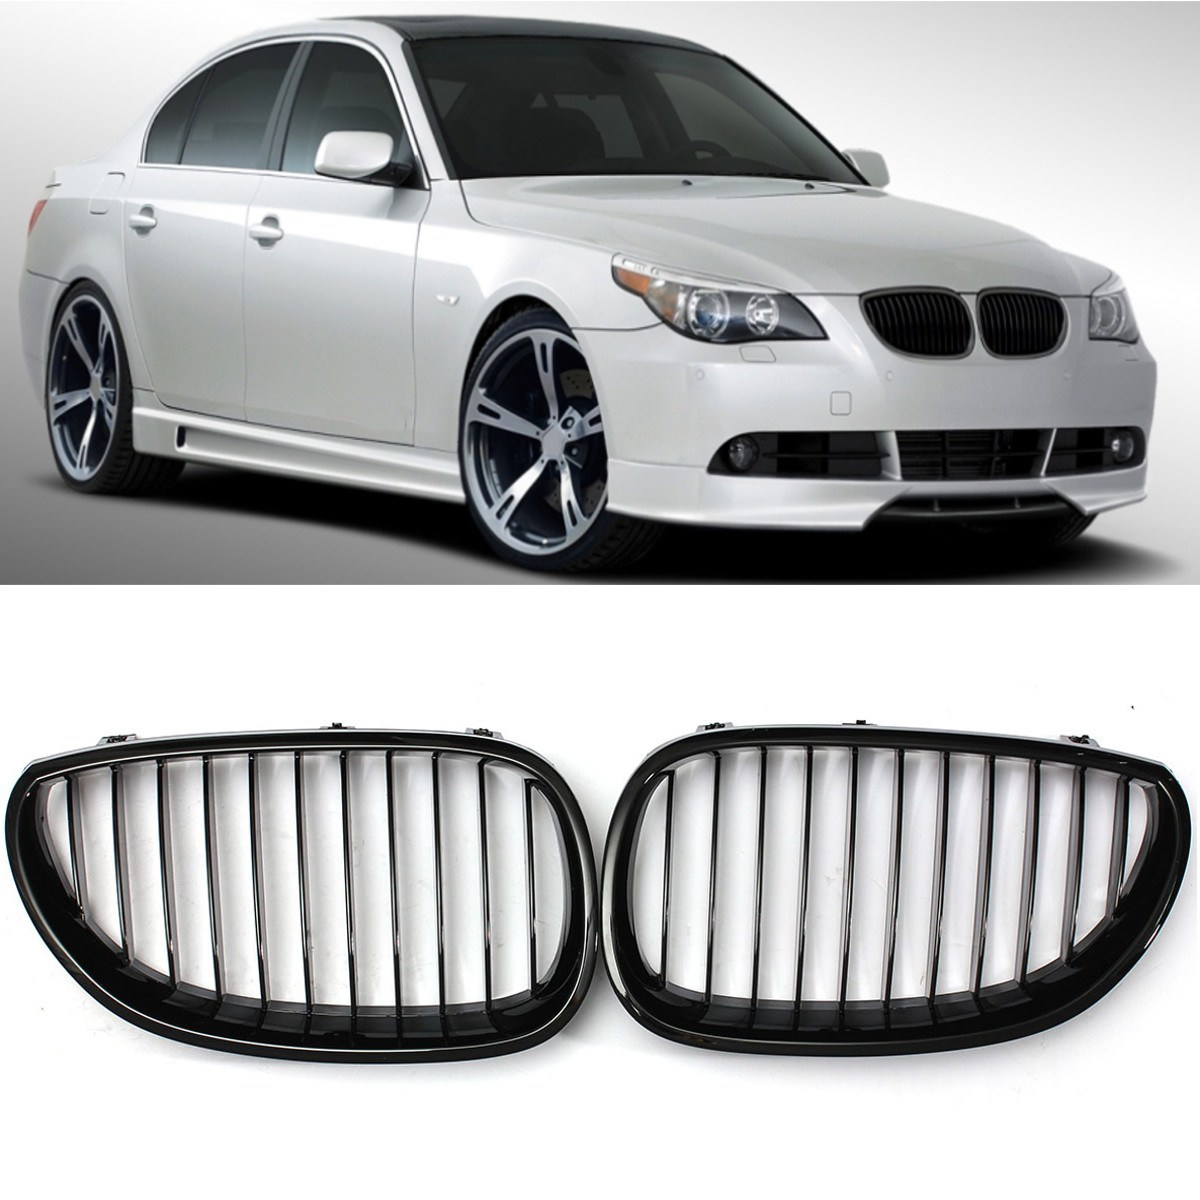 Gloss Black Front Sport Wide Kidney Grille Grill For BMW E60 E61 5 Series M5 03